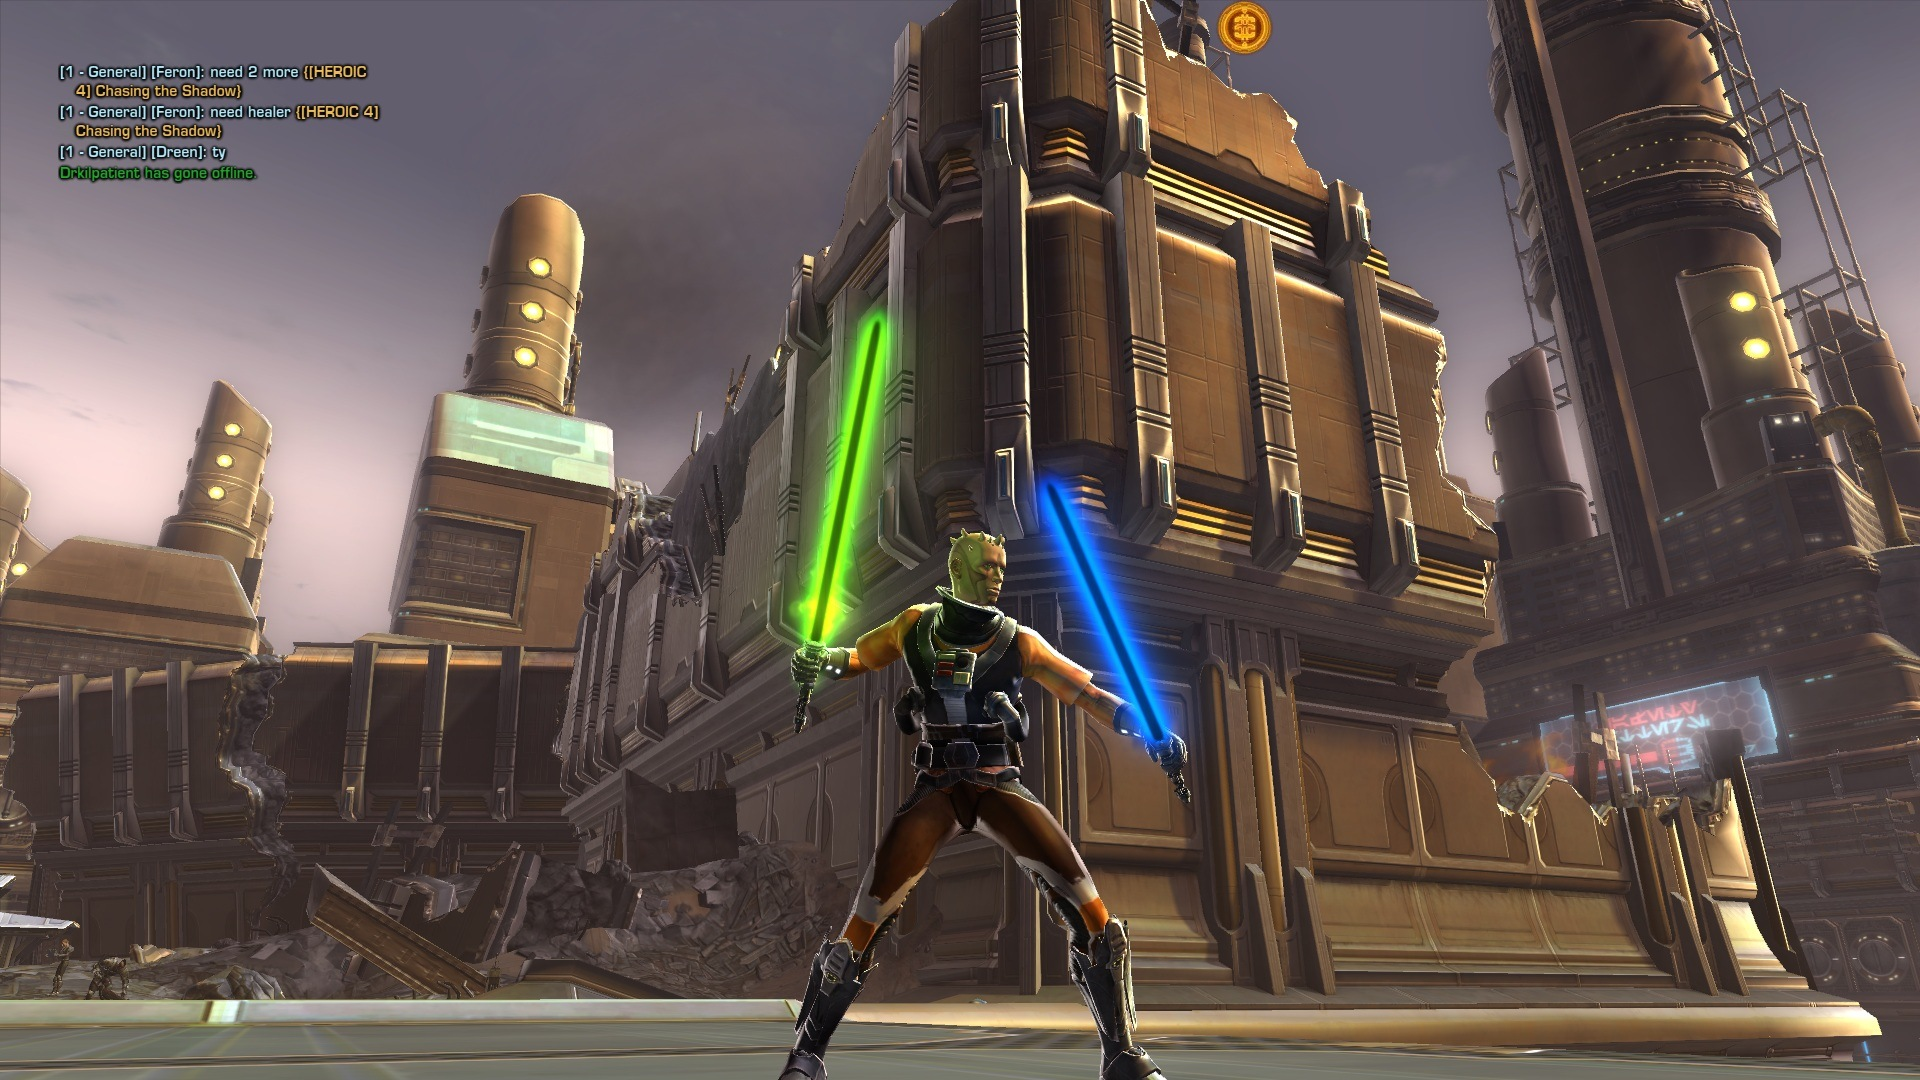 STAR WARS: The Old Republic - Post a screenshot of your favorite